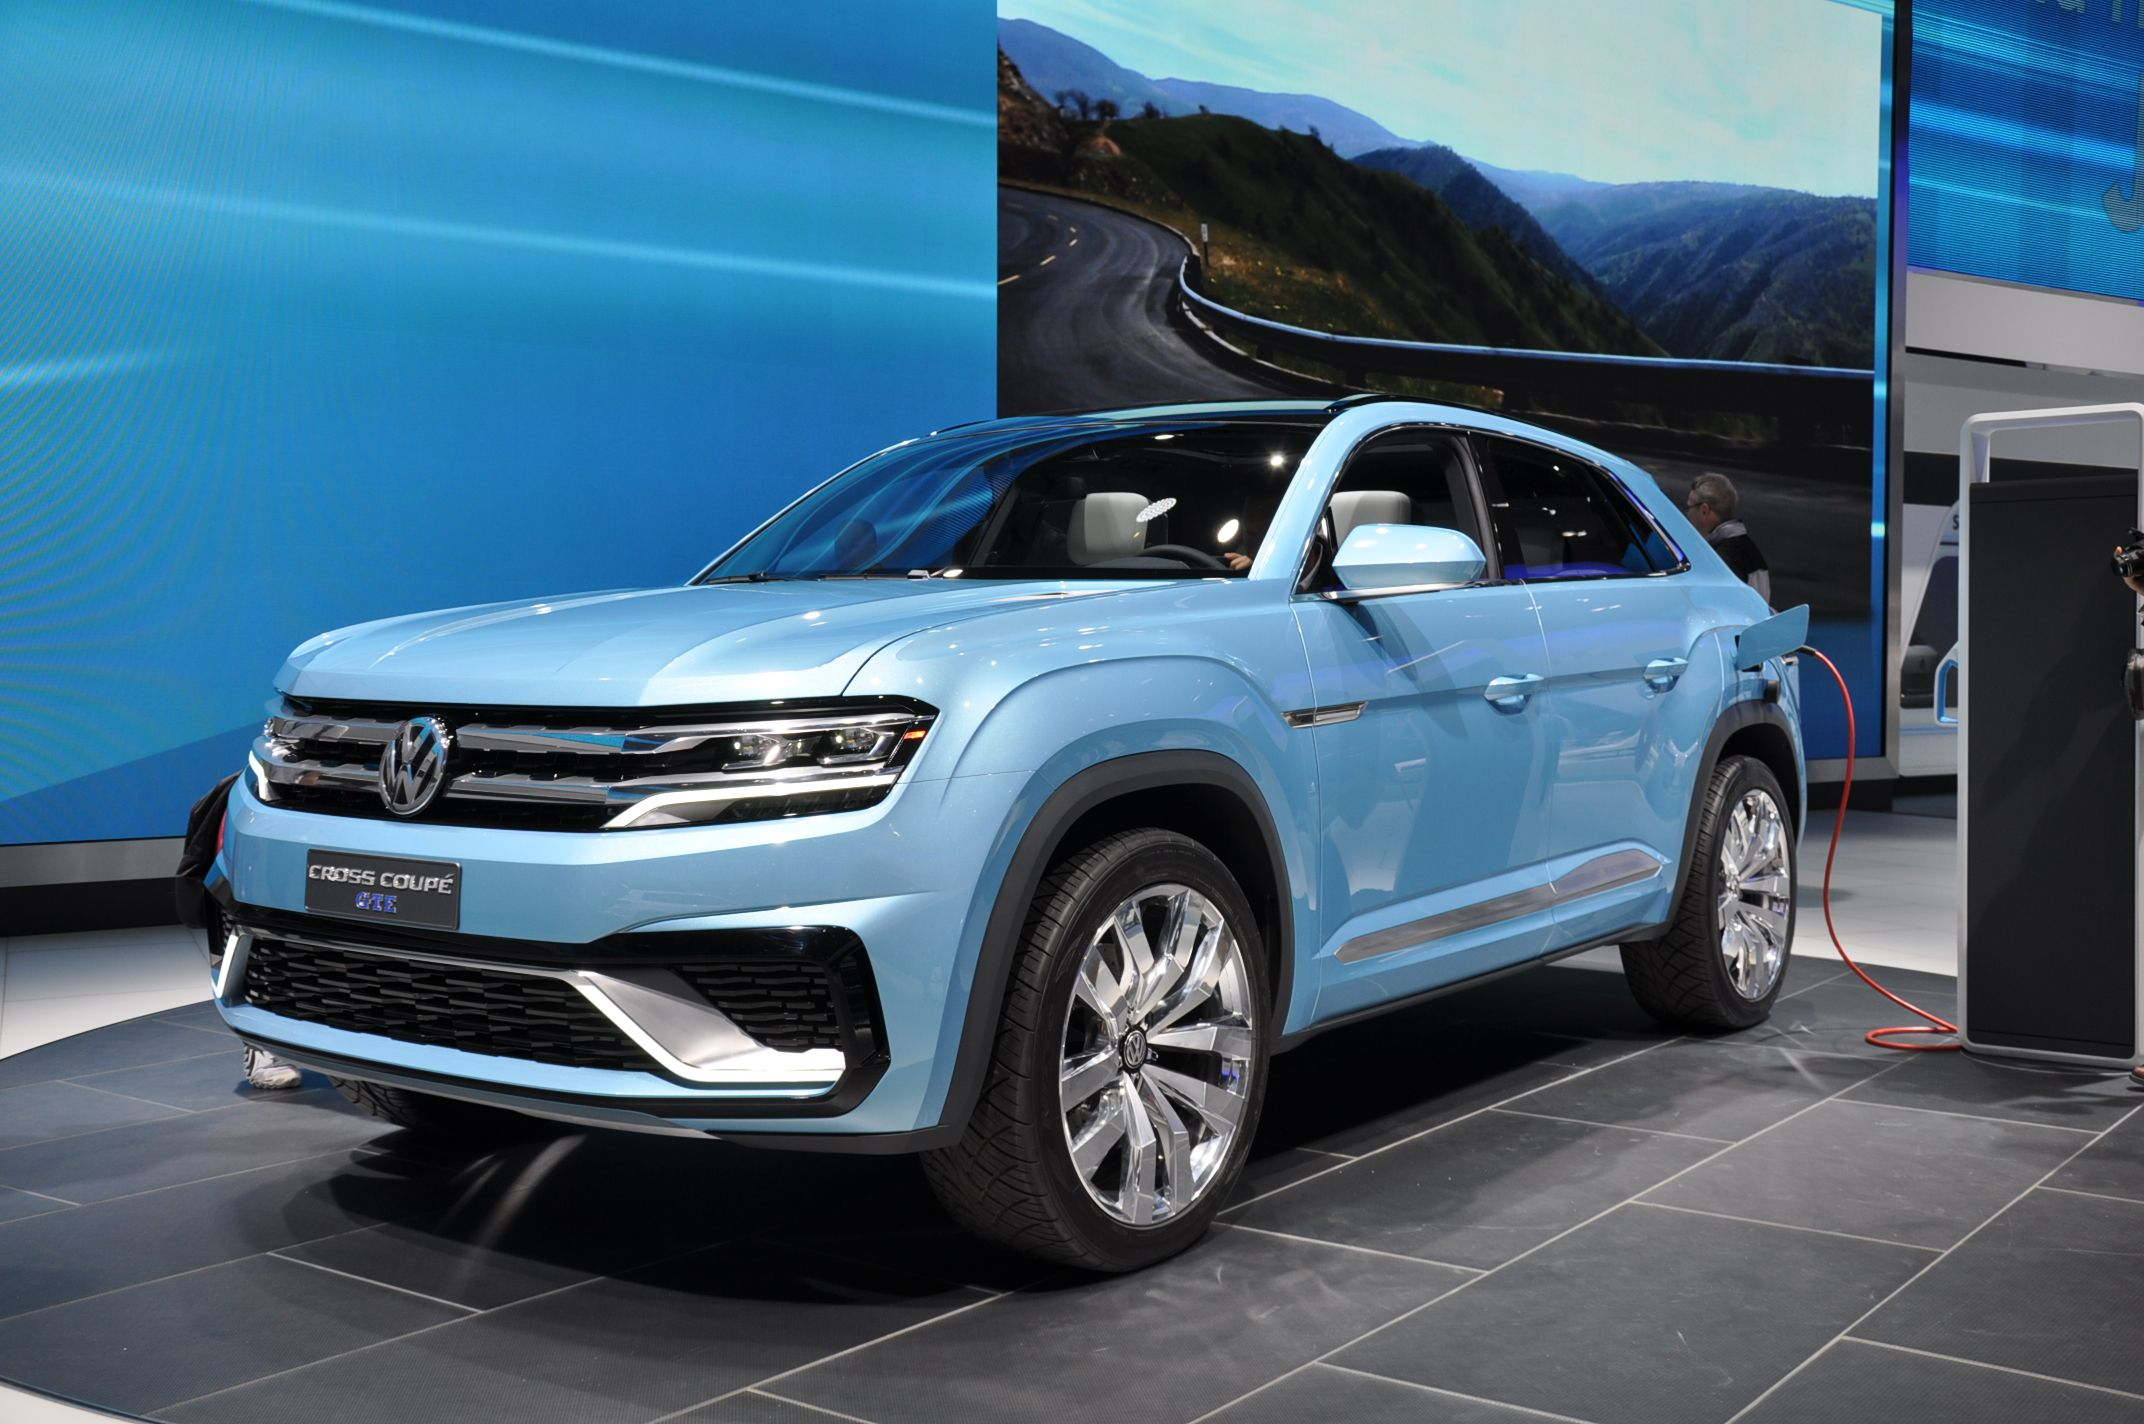 2017 Volkswagen Cross Coupe GTE